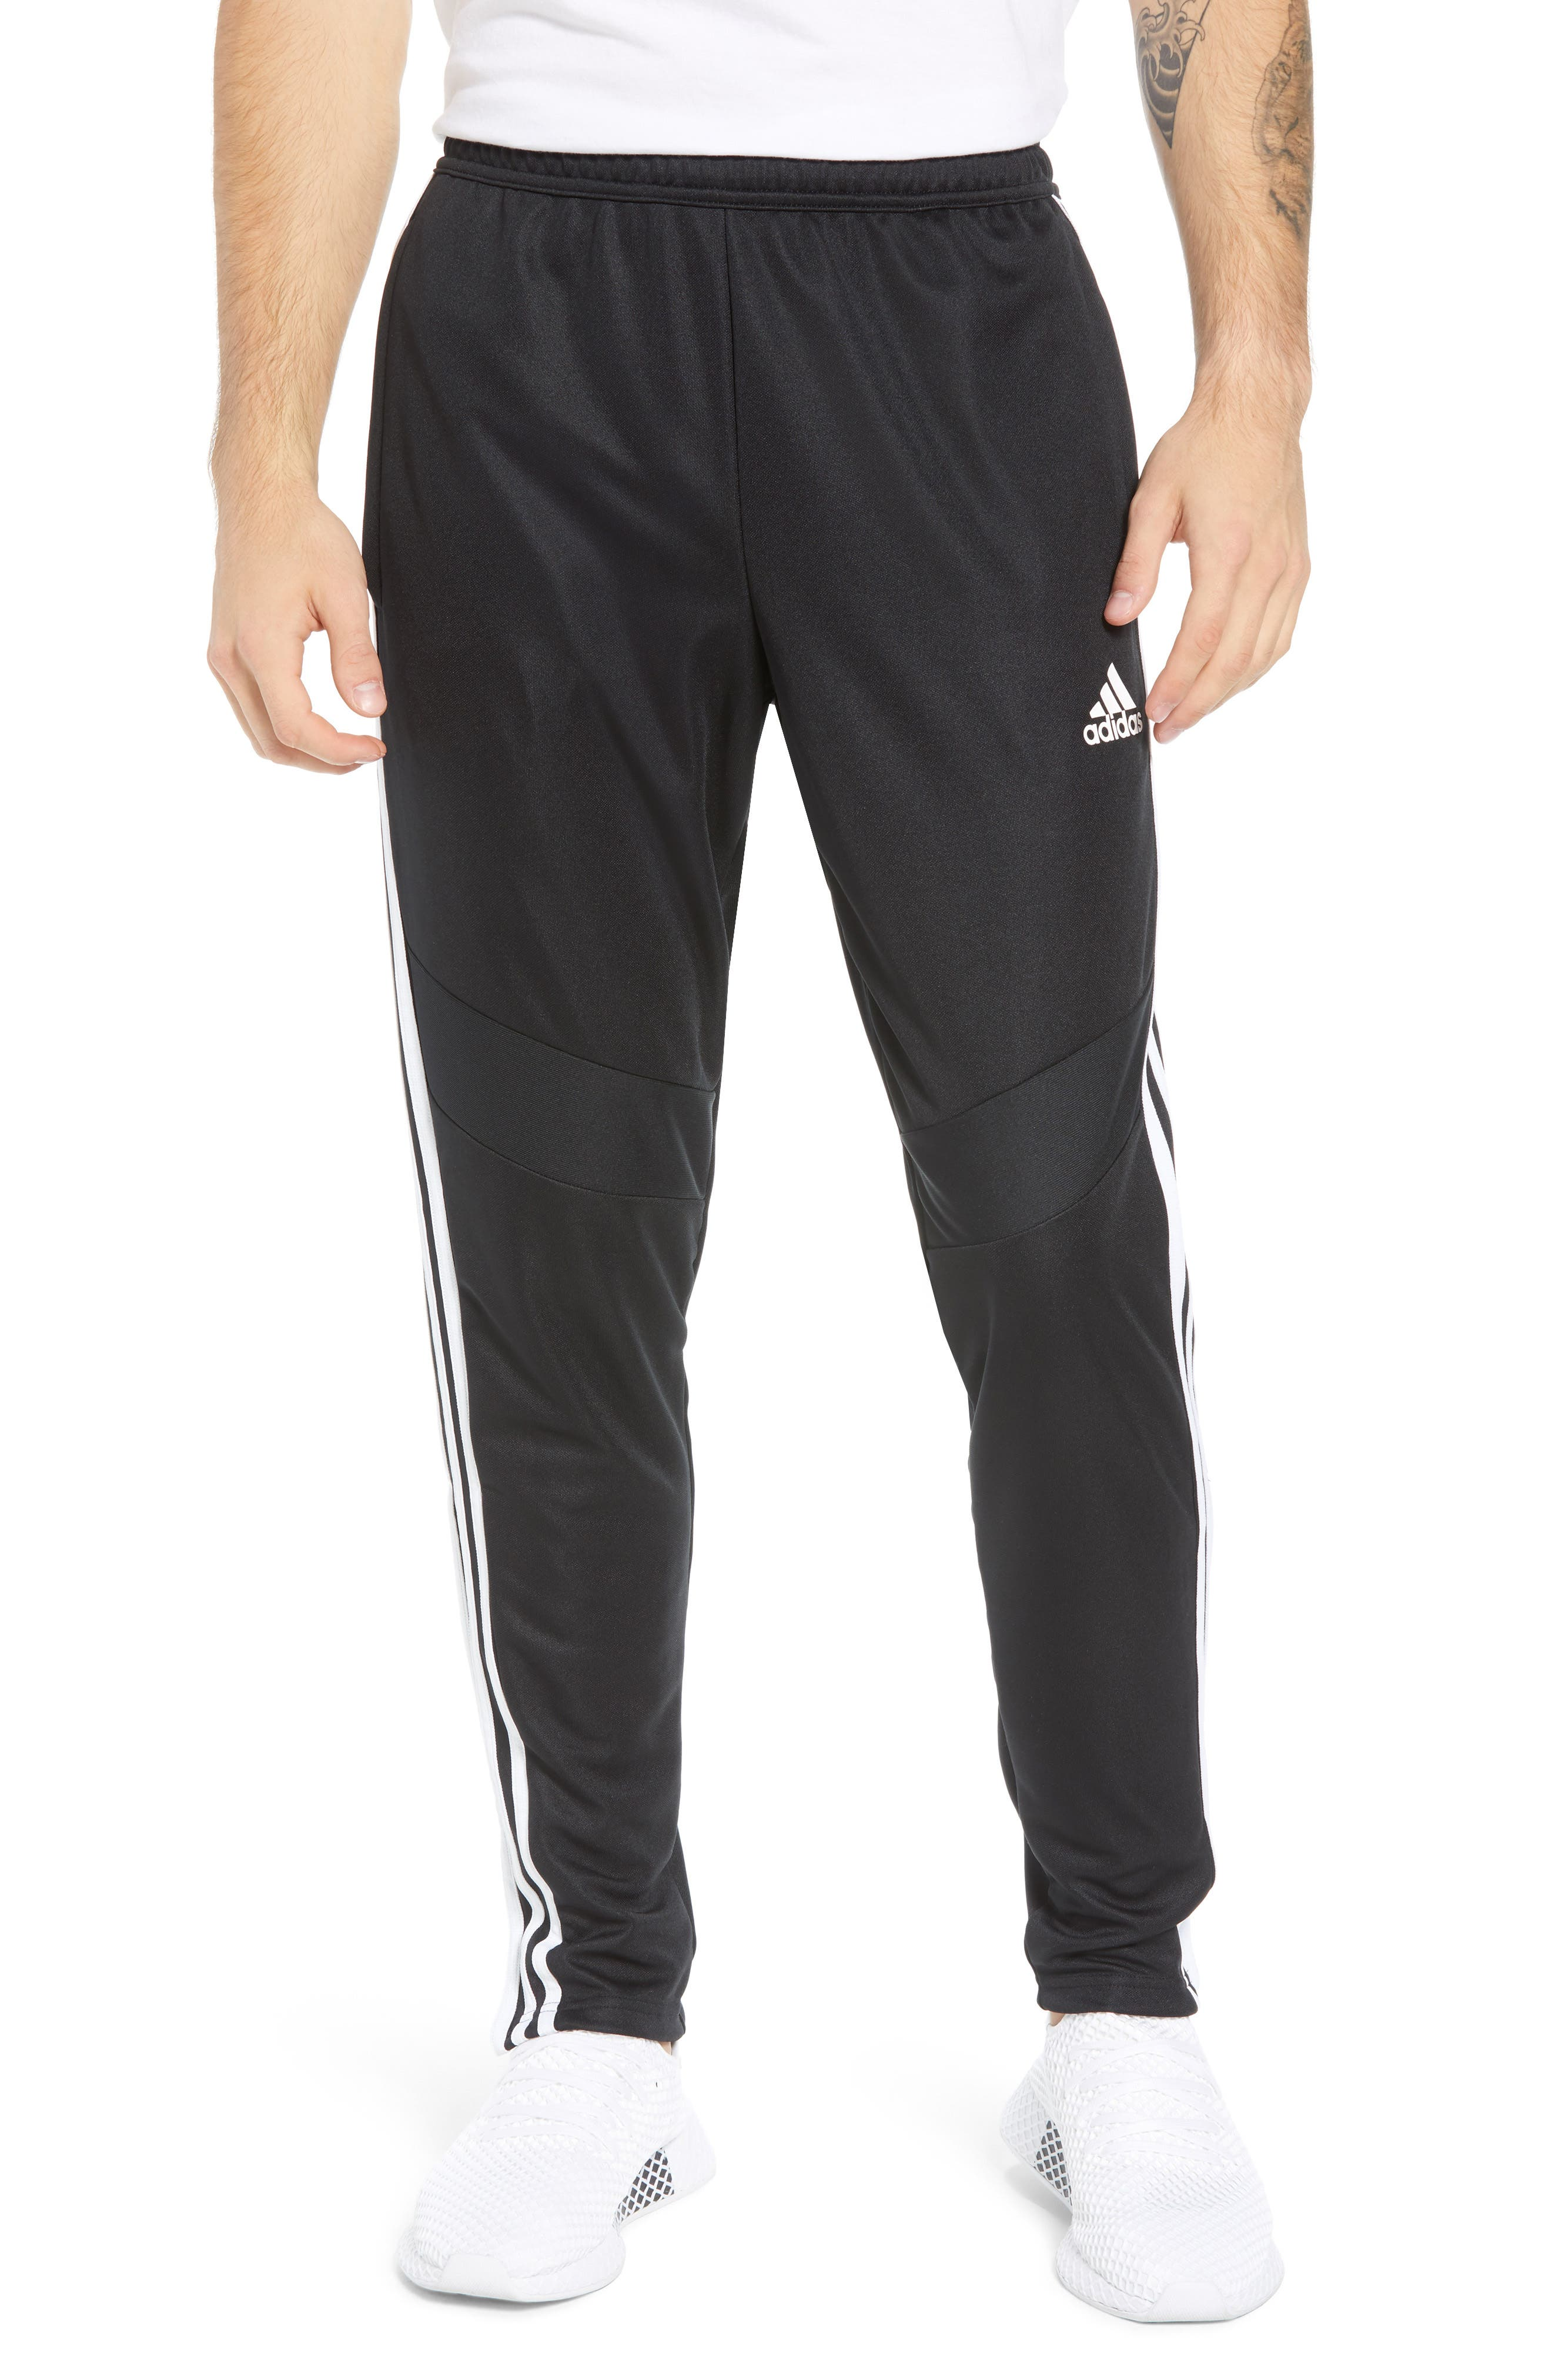 ADIDAS, Tiro Soccer Training Pants, Main thumbnail 1, color, BLACK/ WHITE